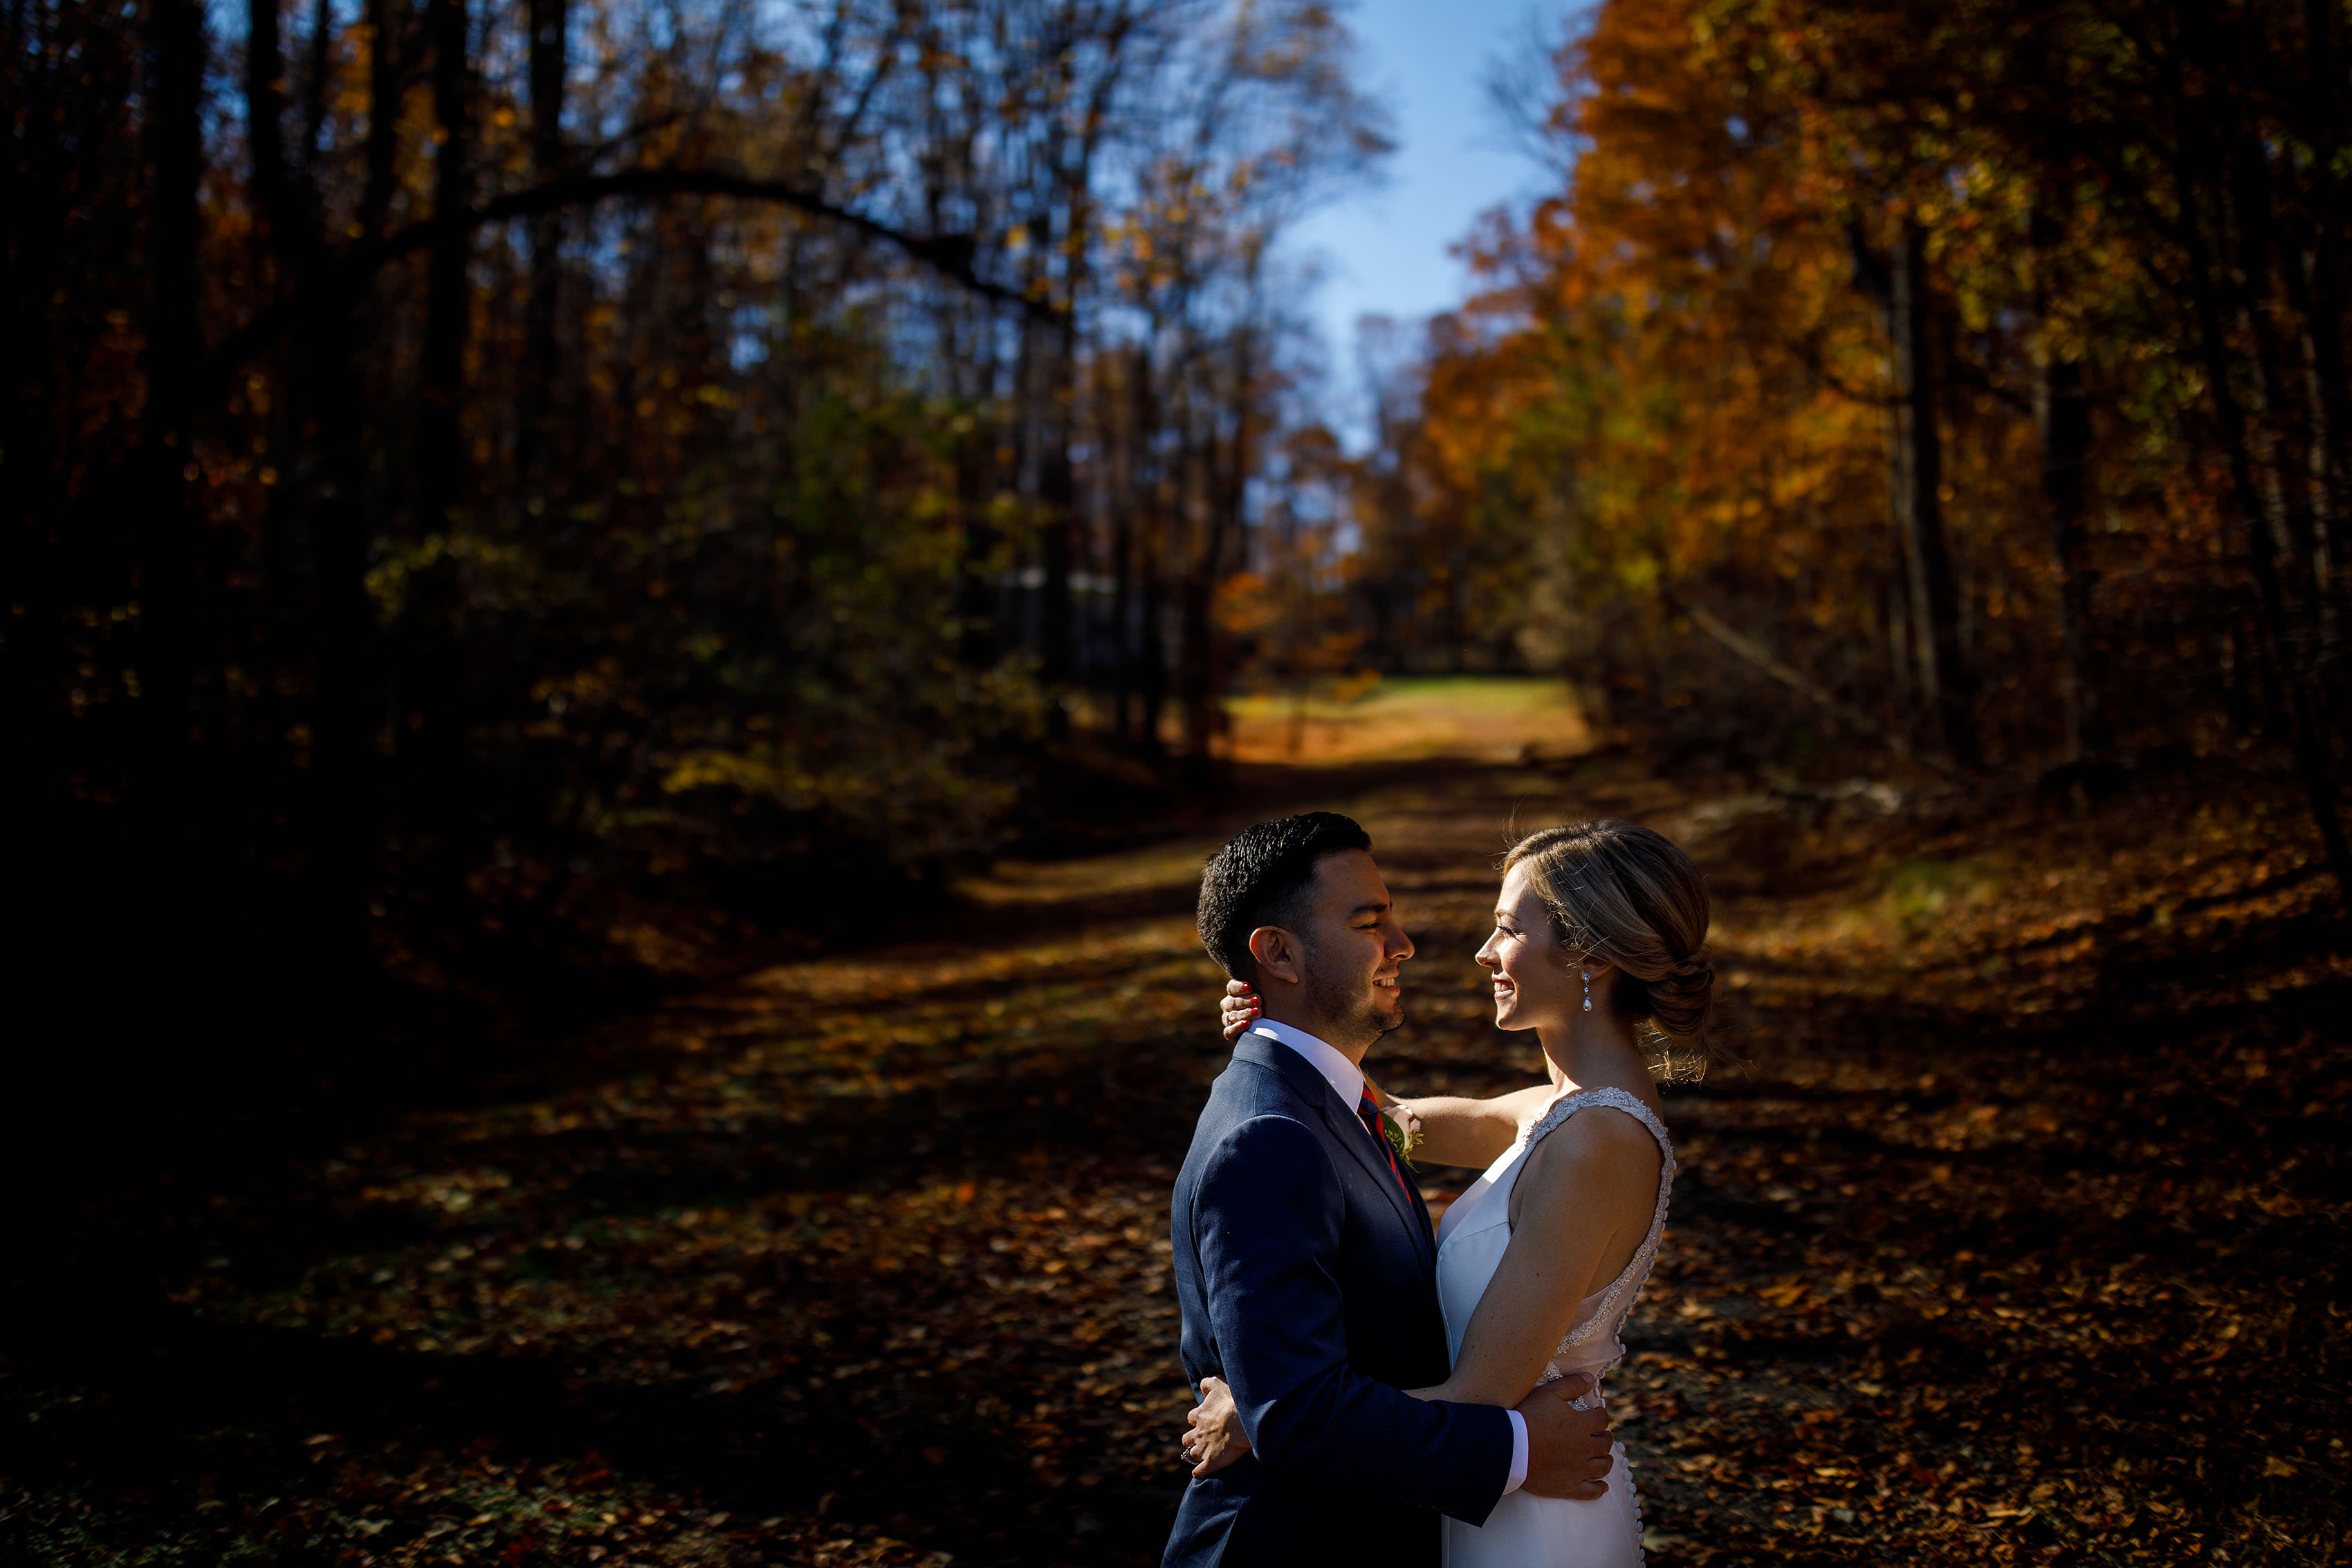 Ashley and Richie share a moment together neara grove of trees during their fall wedding in Orange, Virginia at madison on the Mill